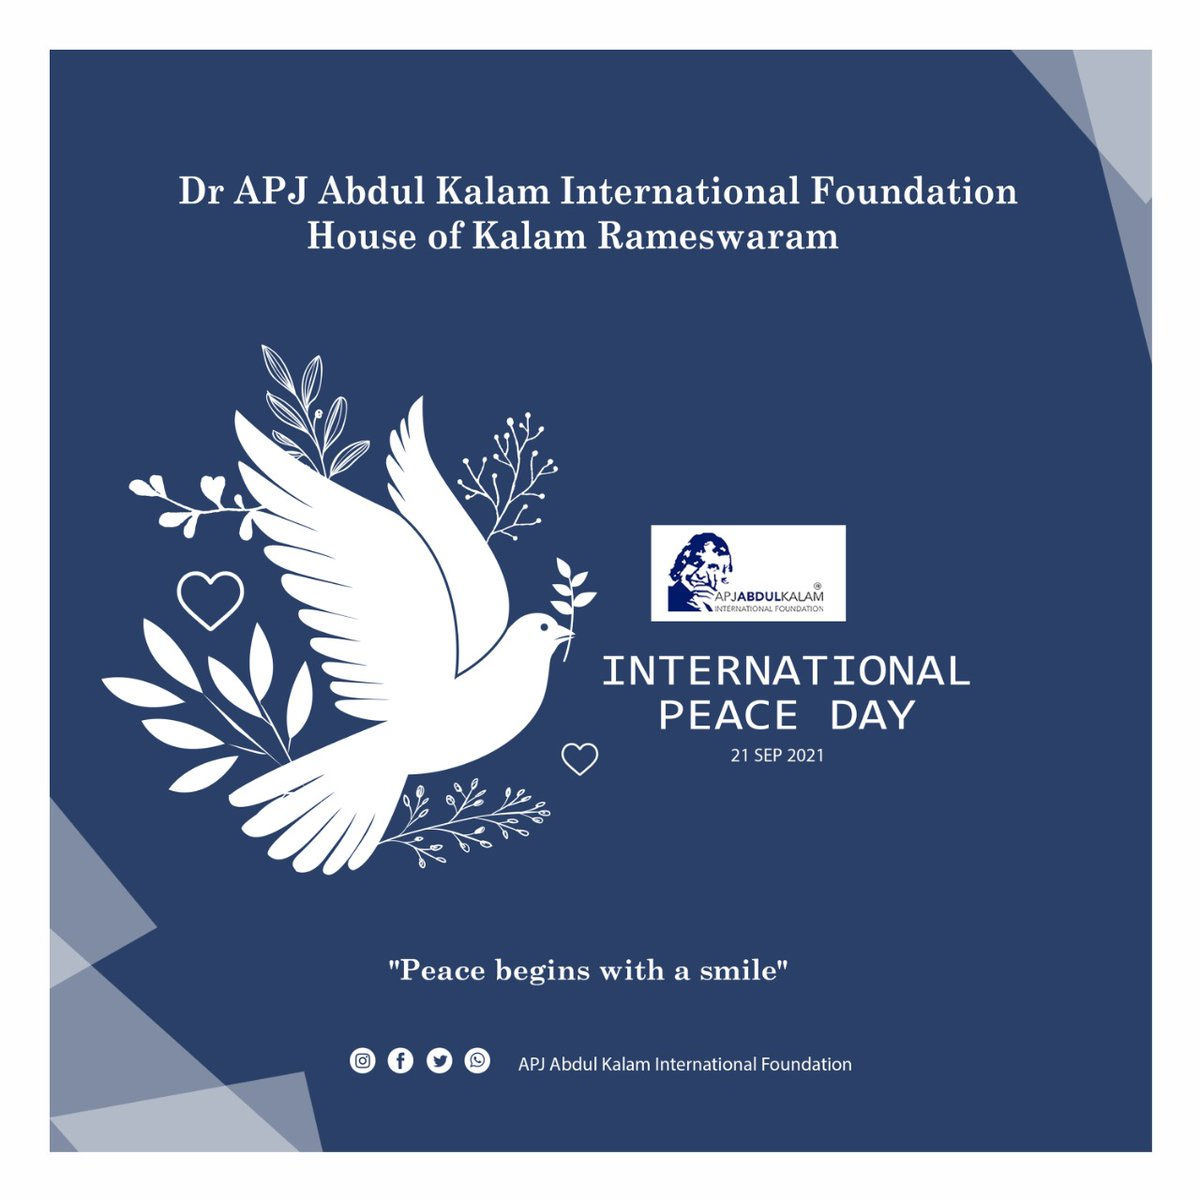 There is beauty in the character When there is beauty in the character There is harmony in the home When there is harmony in the home There is order in the nation When there is order in the nation There is peace in the world. #apjabdulkalam #apjabdulkalaminternationalfoundation https://t.co/fFjNJL5Daj